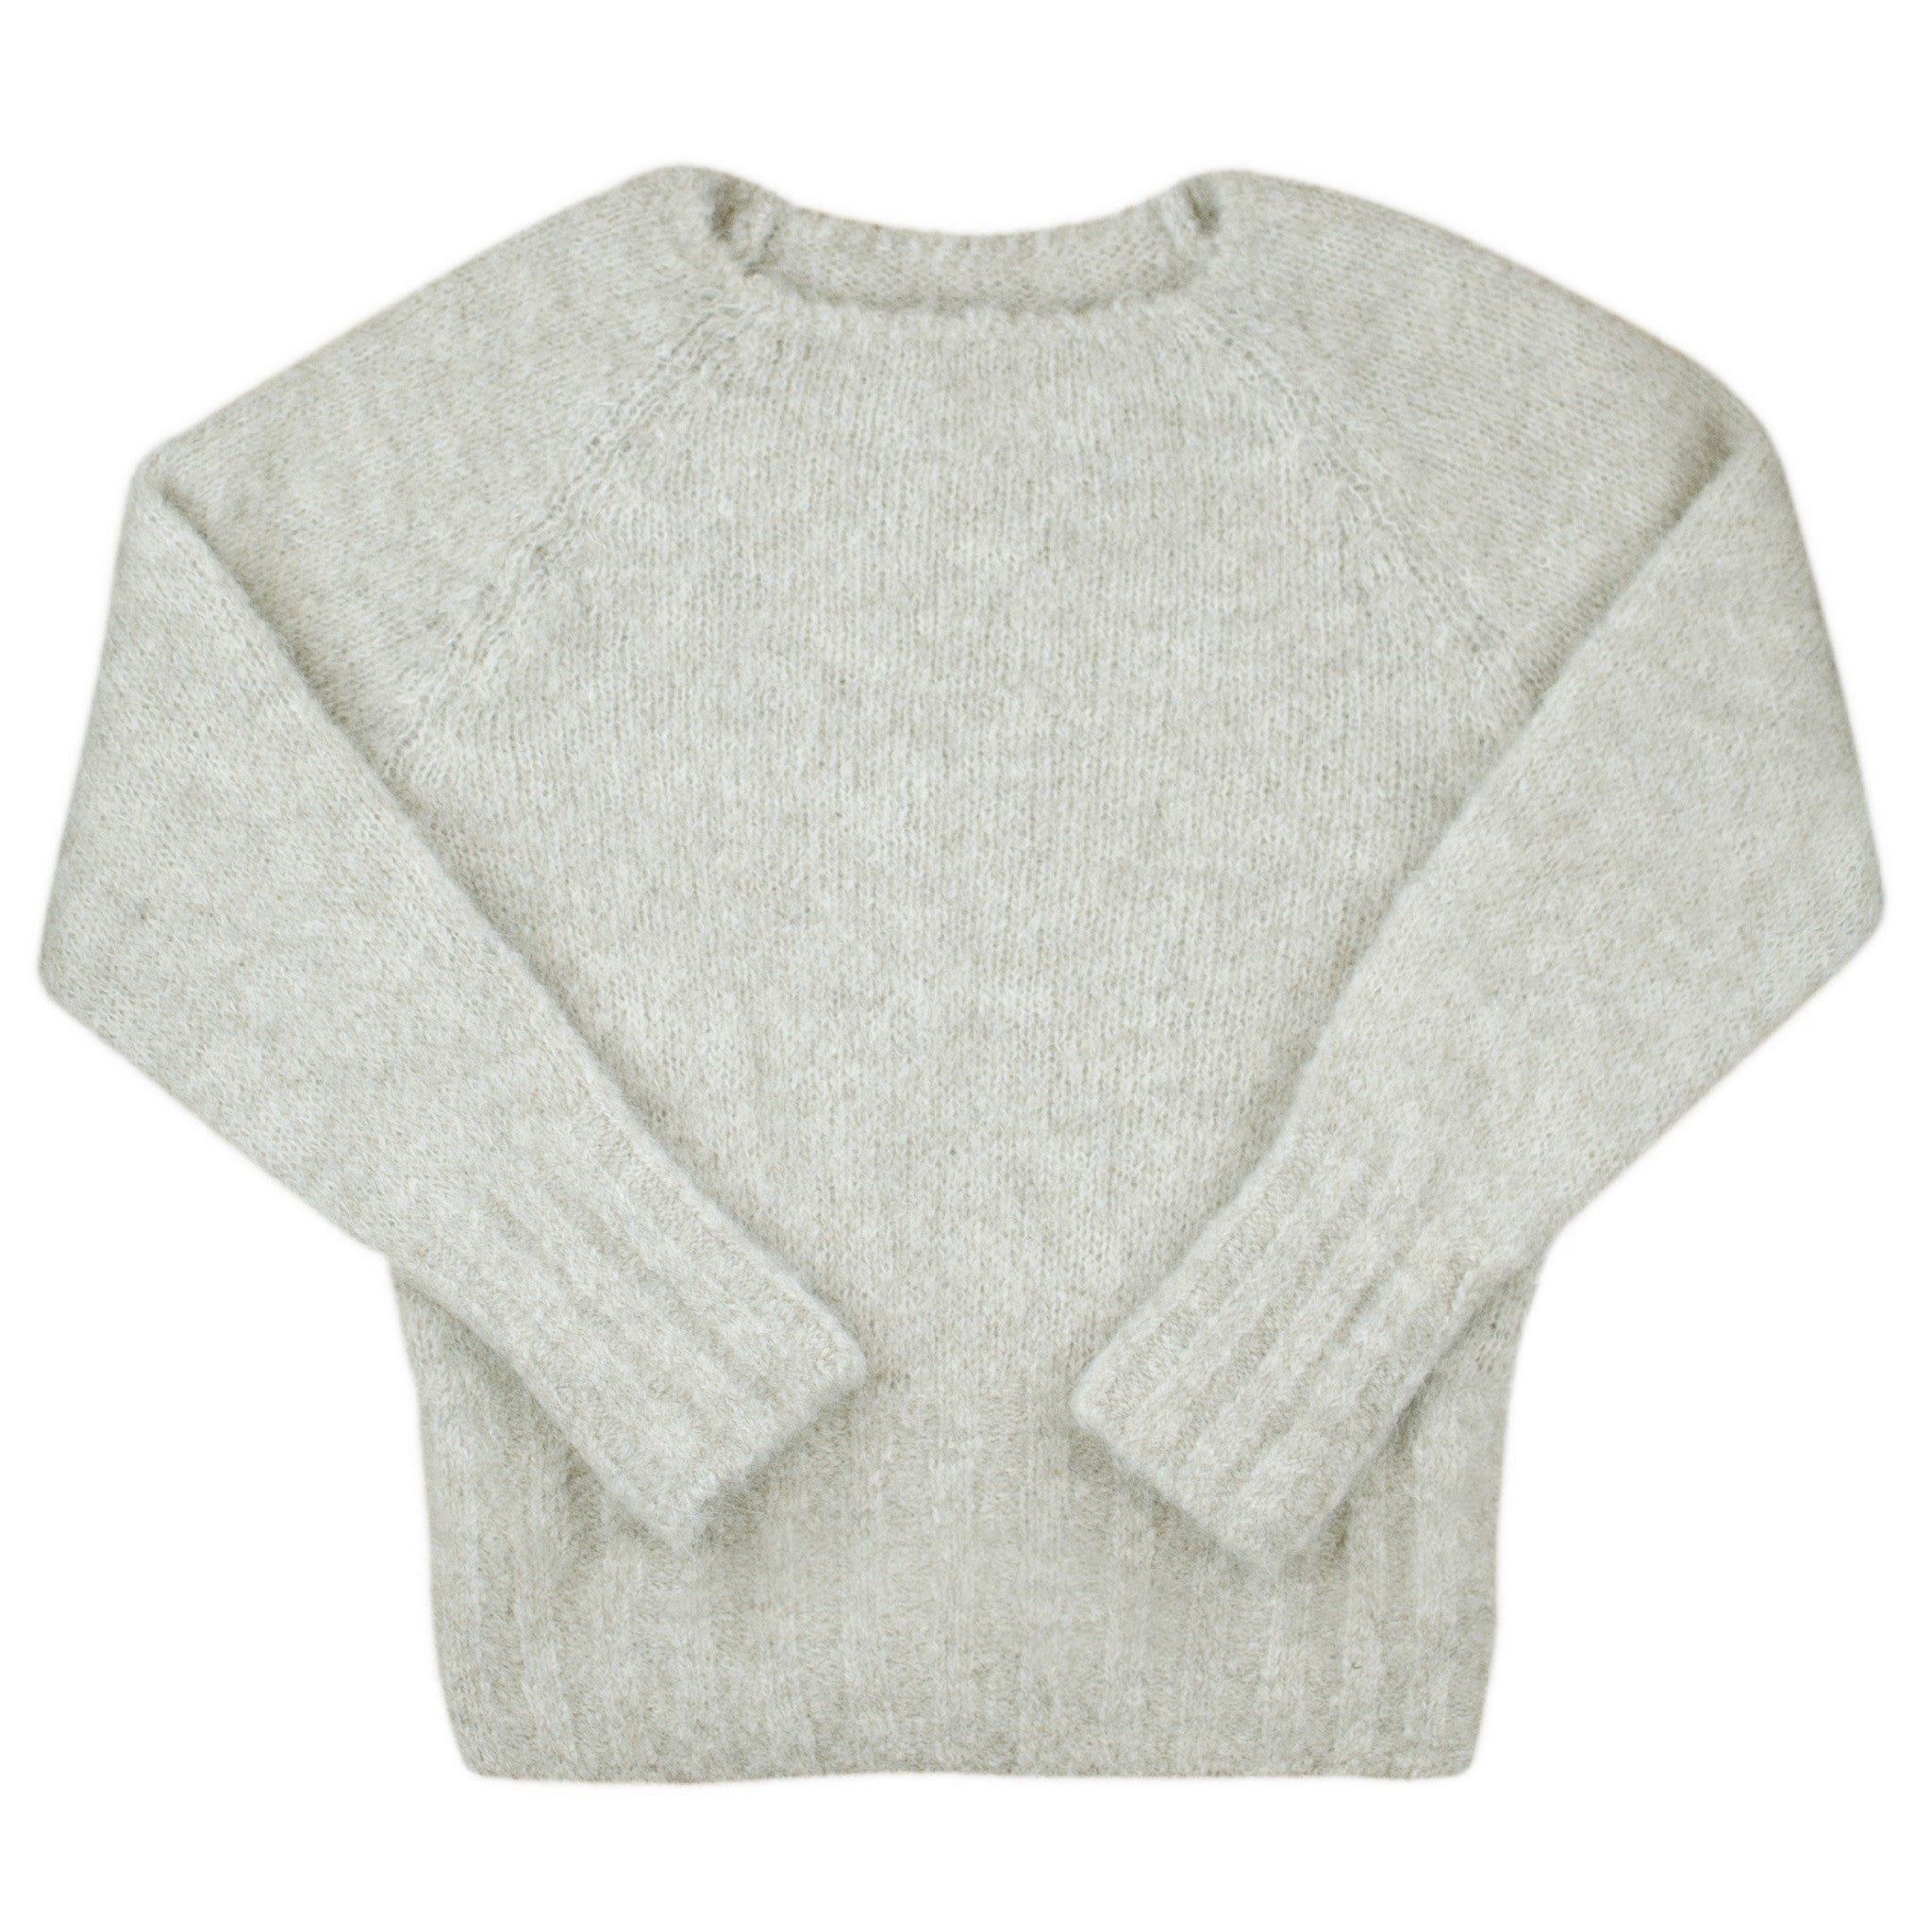 Alpaca Brushed Sweater